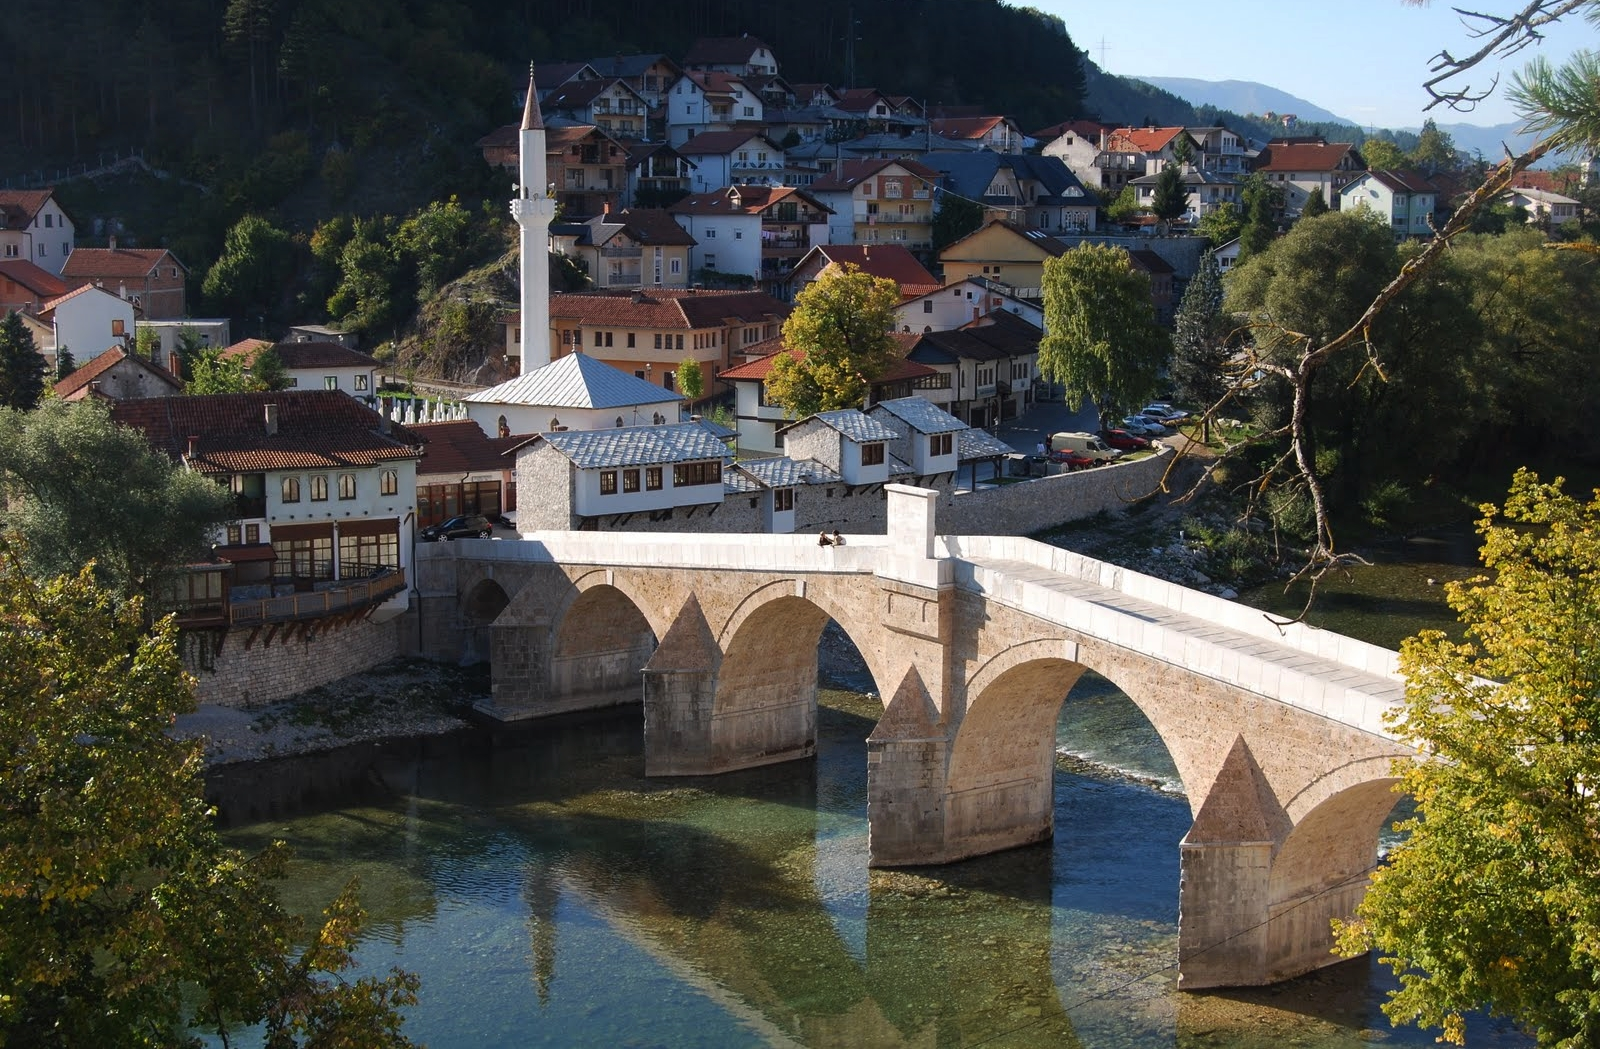 Konjic, Bosnia and Herzegovina - Monterrasol private tours to Konjic, Bosnia and Herzegovina. Travel agency offers custom private car tours to see Konjic in Bosnia and Herzegovina. Order custom private tour to Konjic with departure date on request.